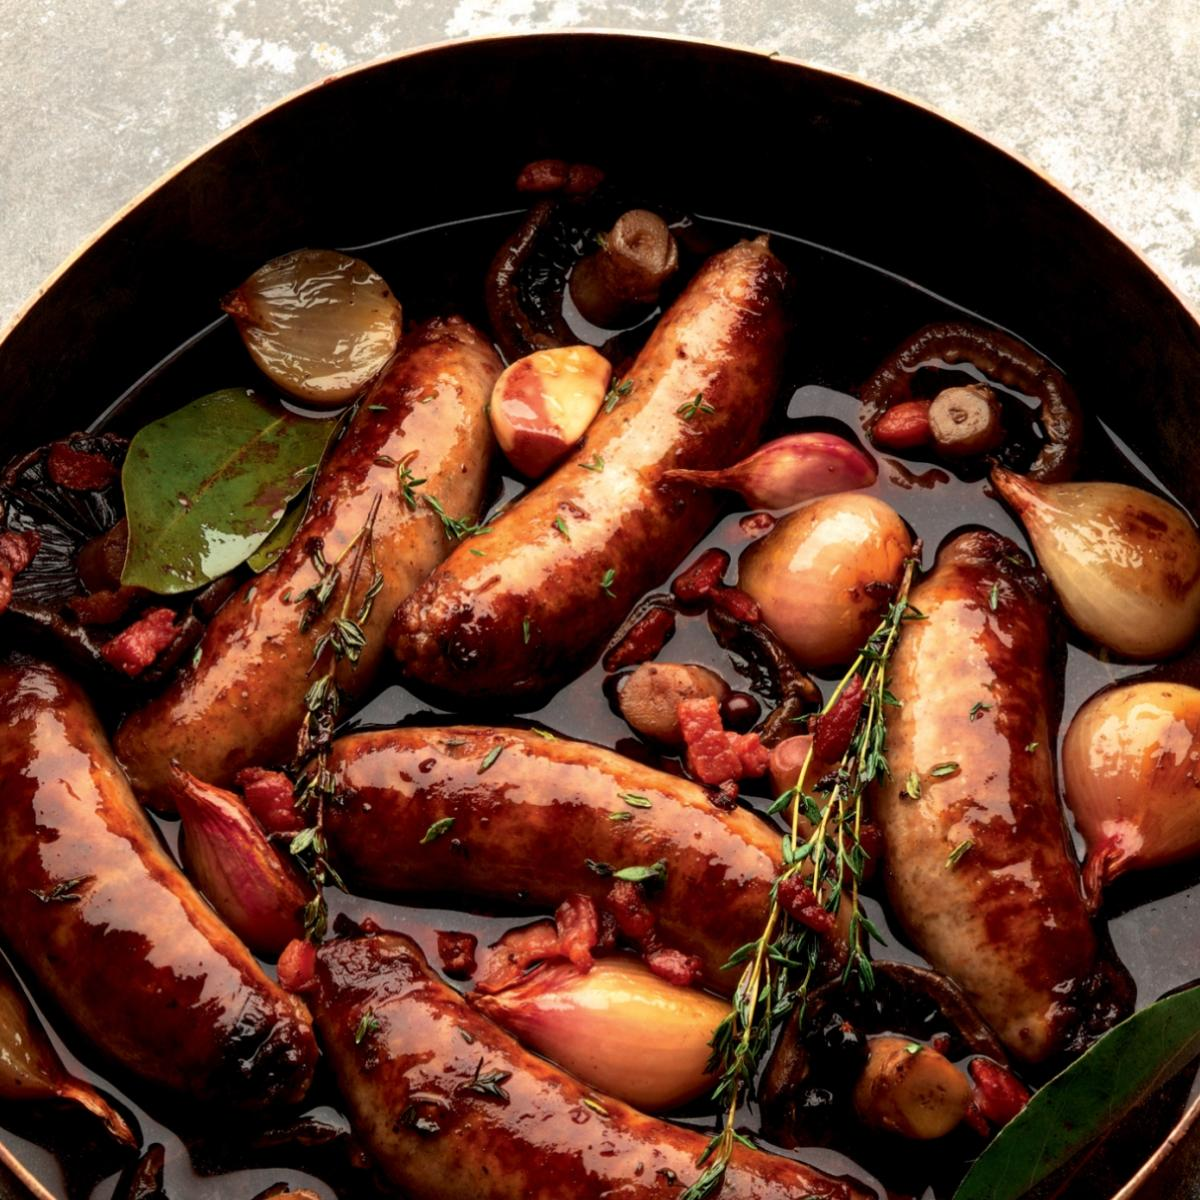 A picture of Delia's Venison Sausages Braised in Red Wine recipe